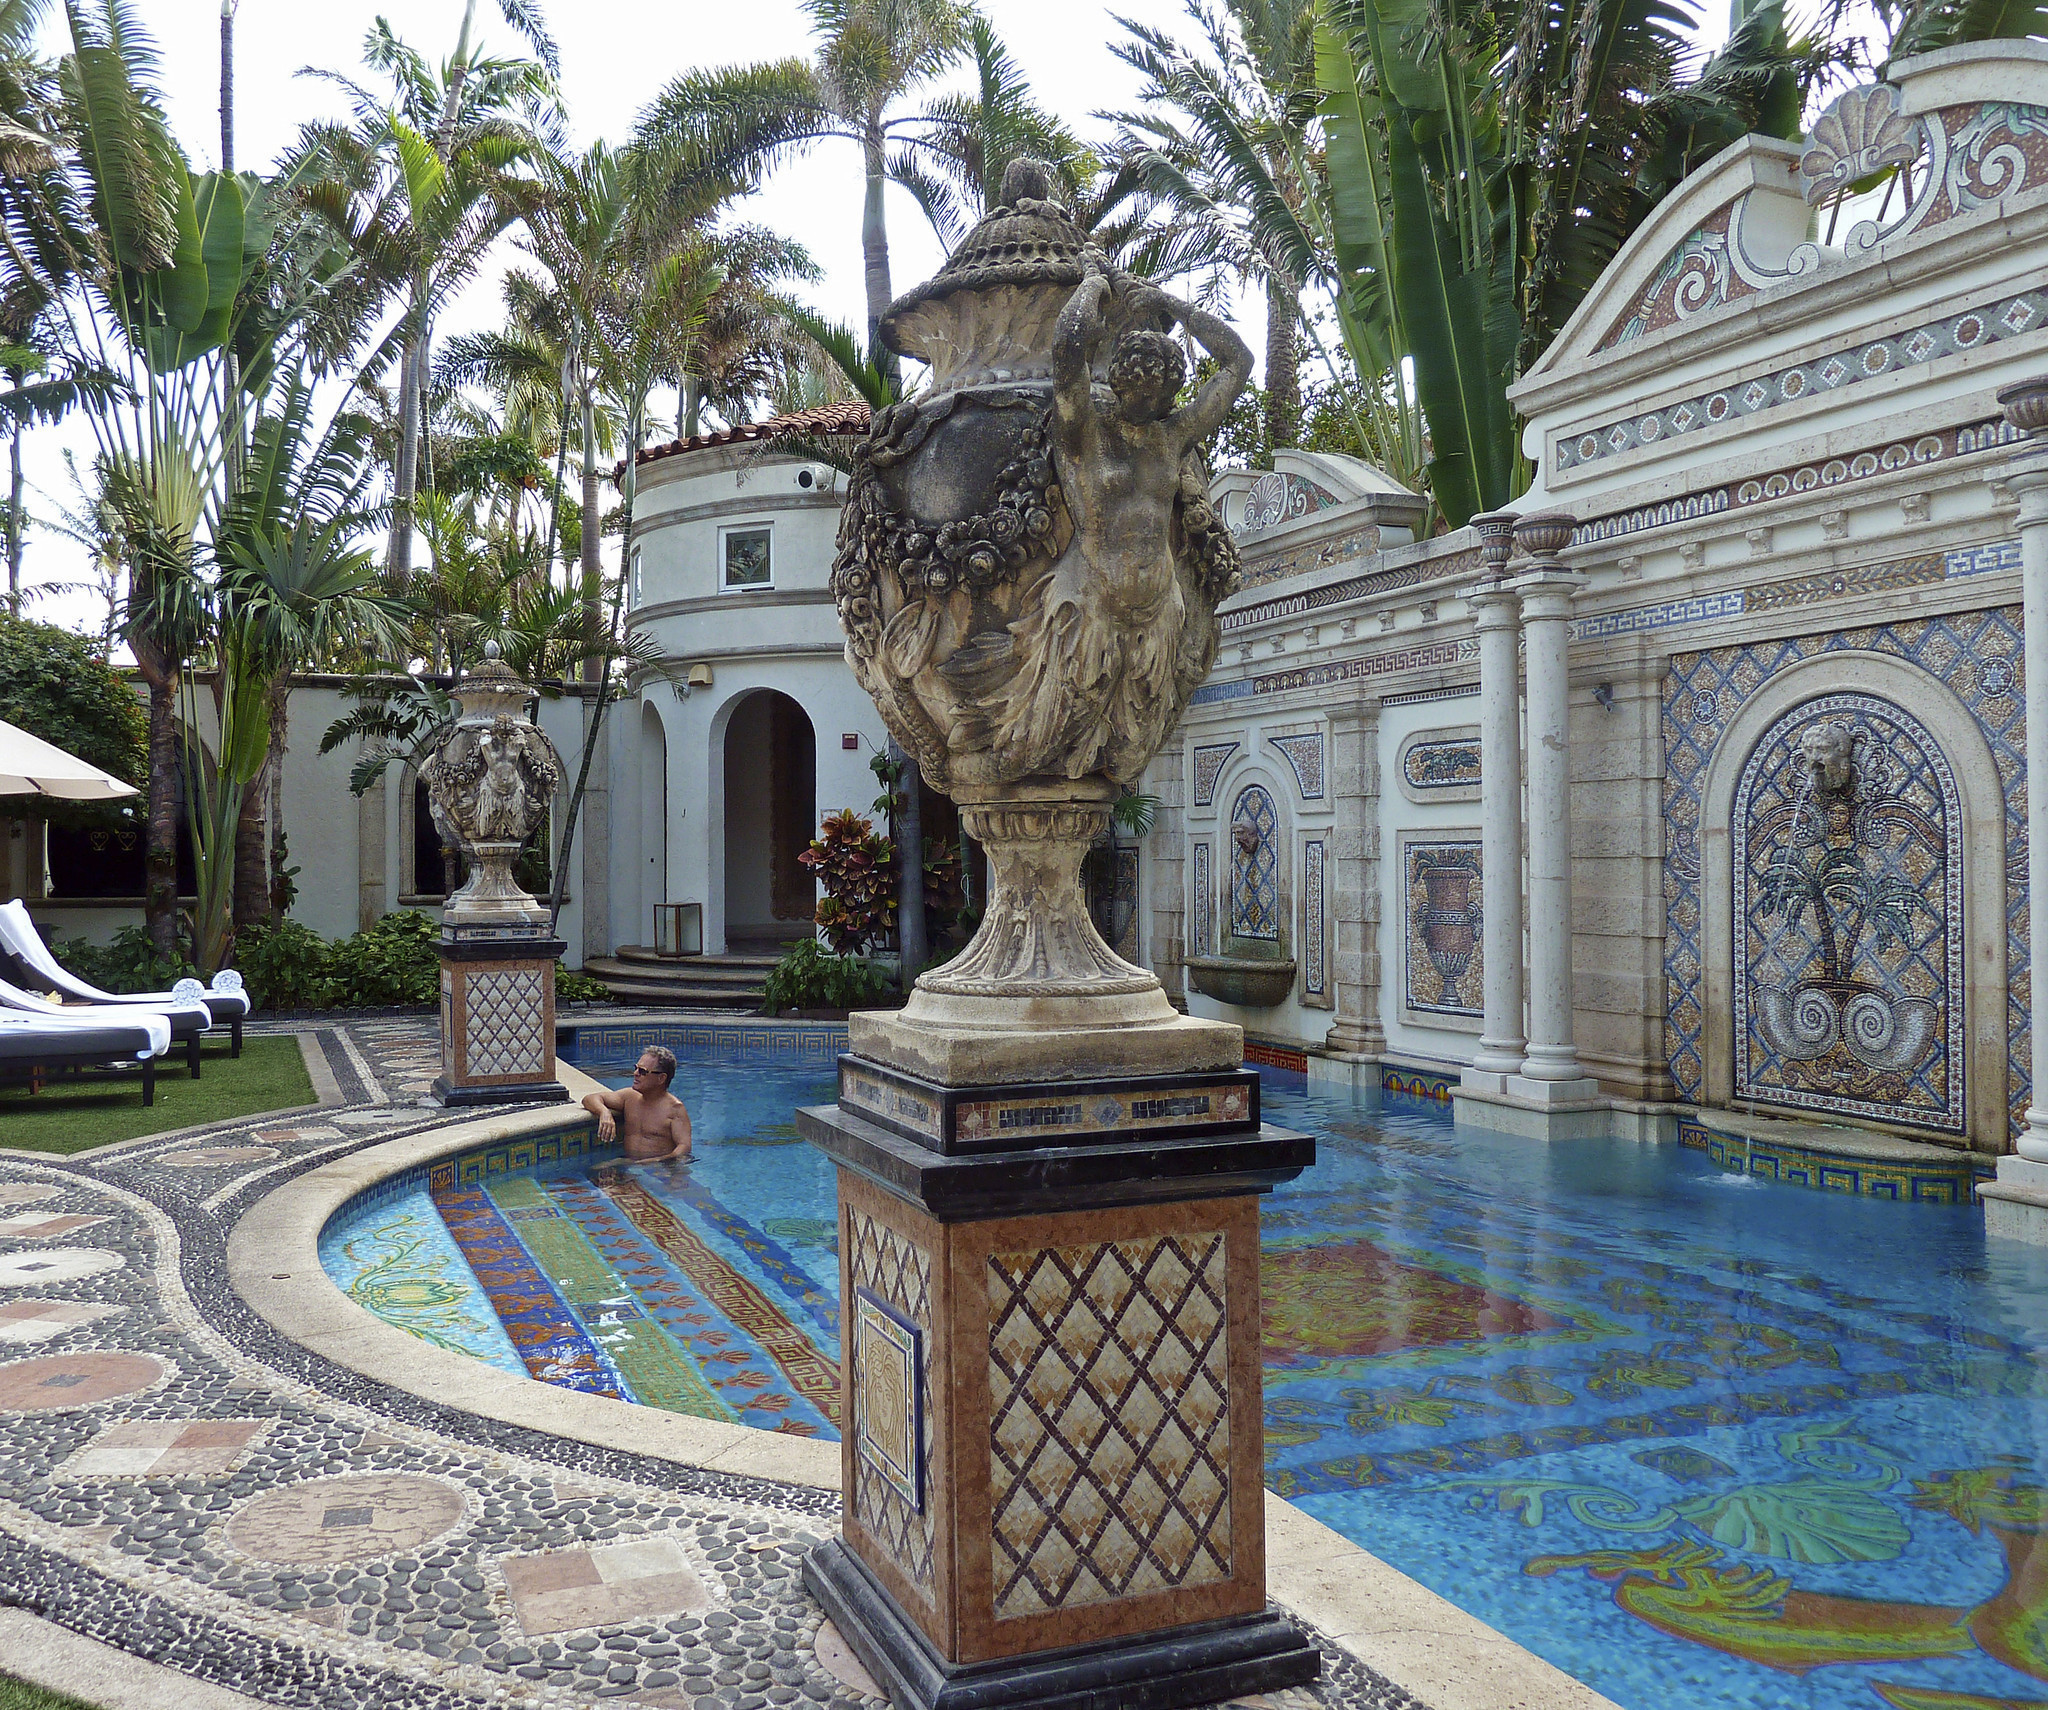 New Versace miniseries stirs curiosity about his mansion